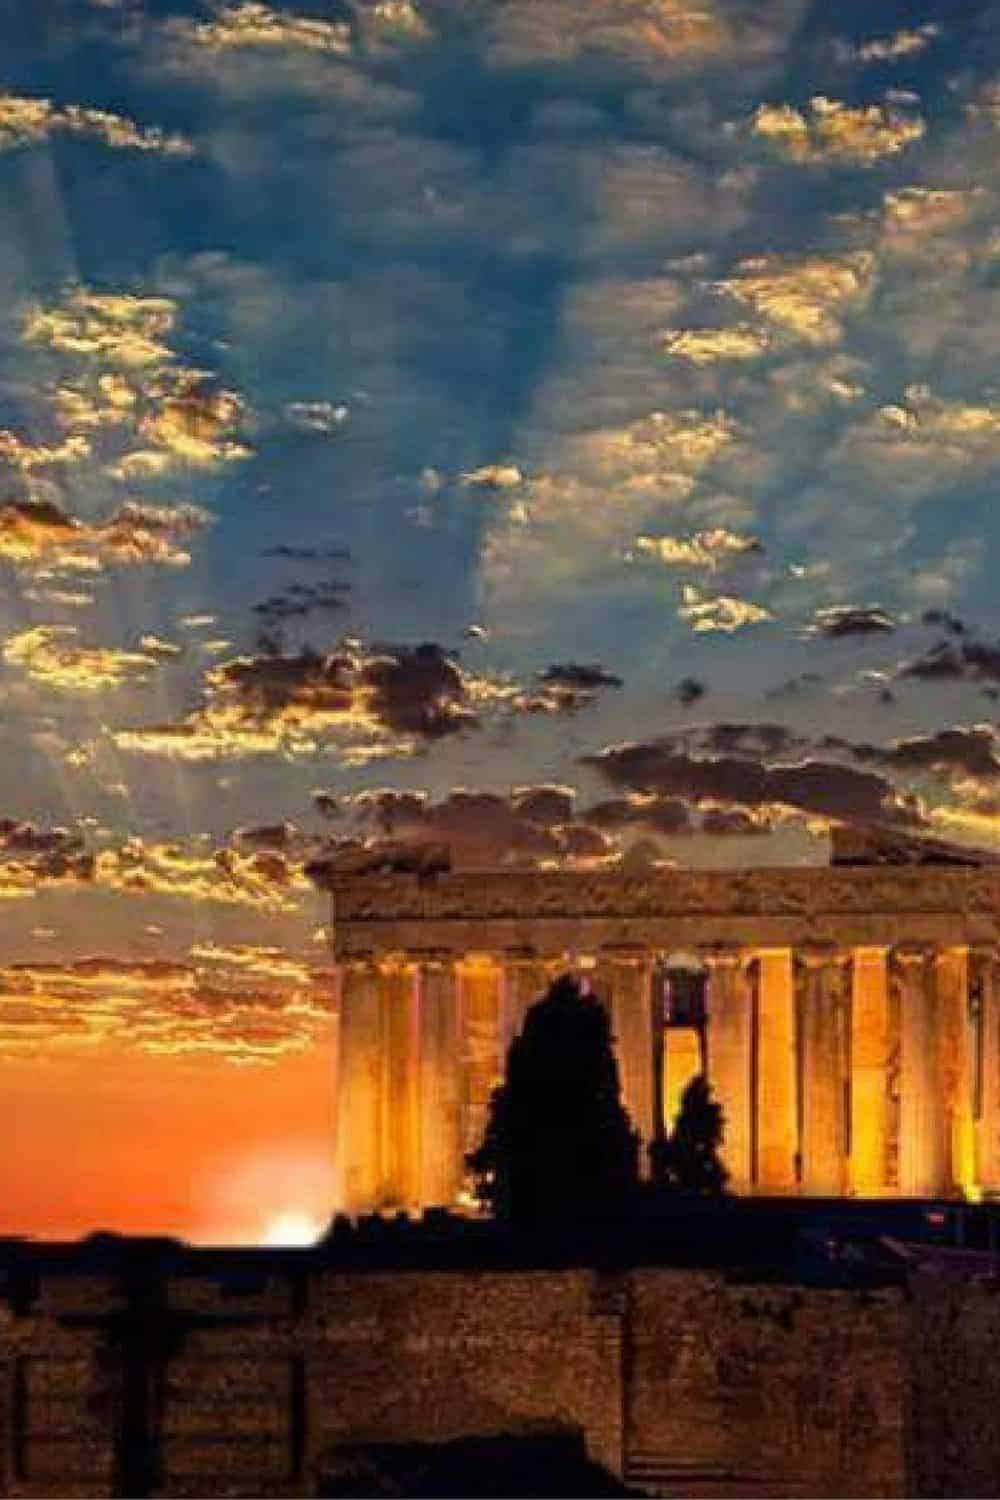 Acropolis in Athens during sunset